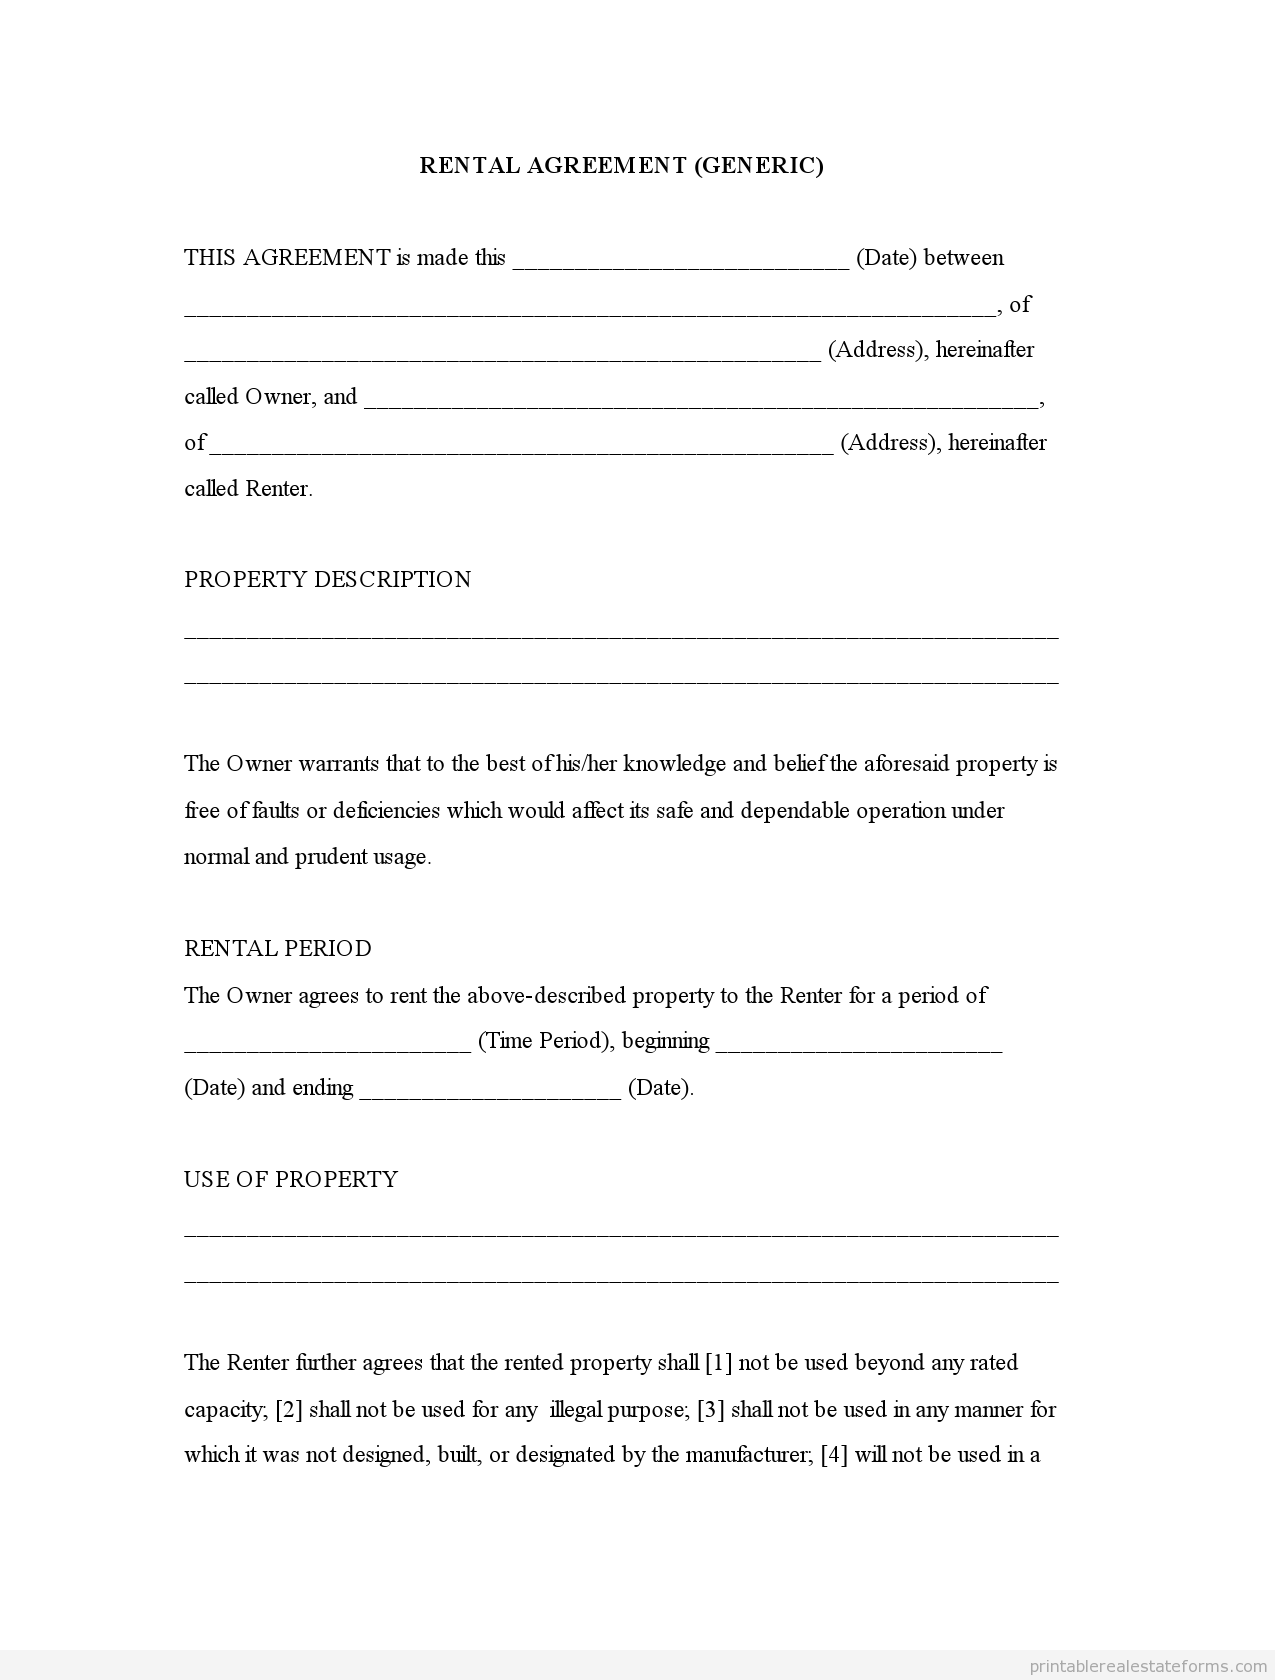 Free Printable Rental Agreement – Free Rental Agreements